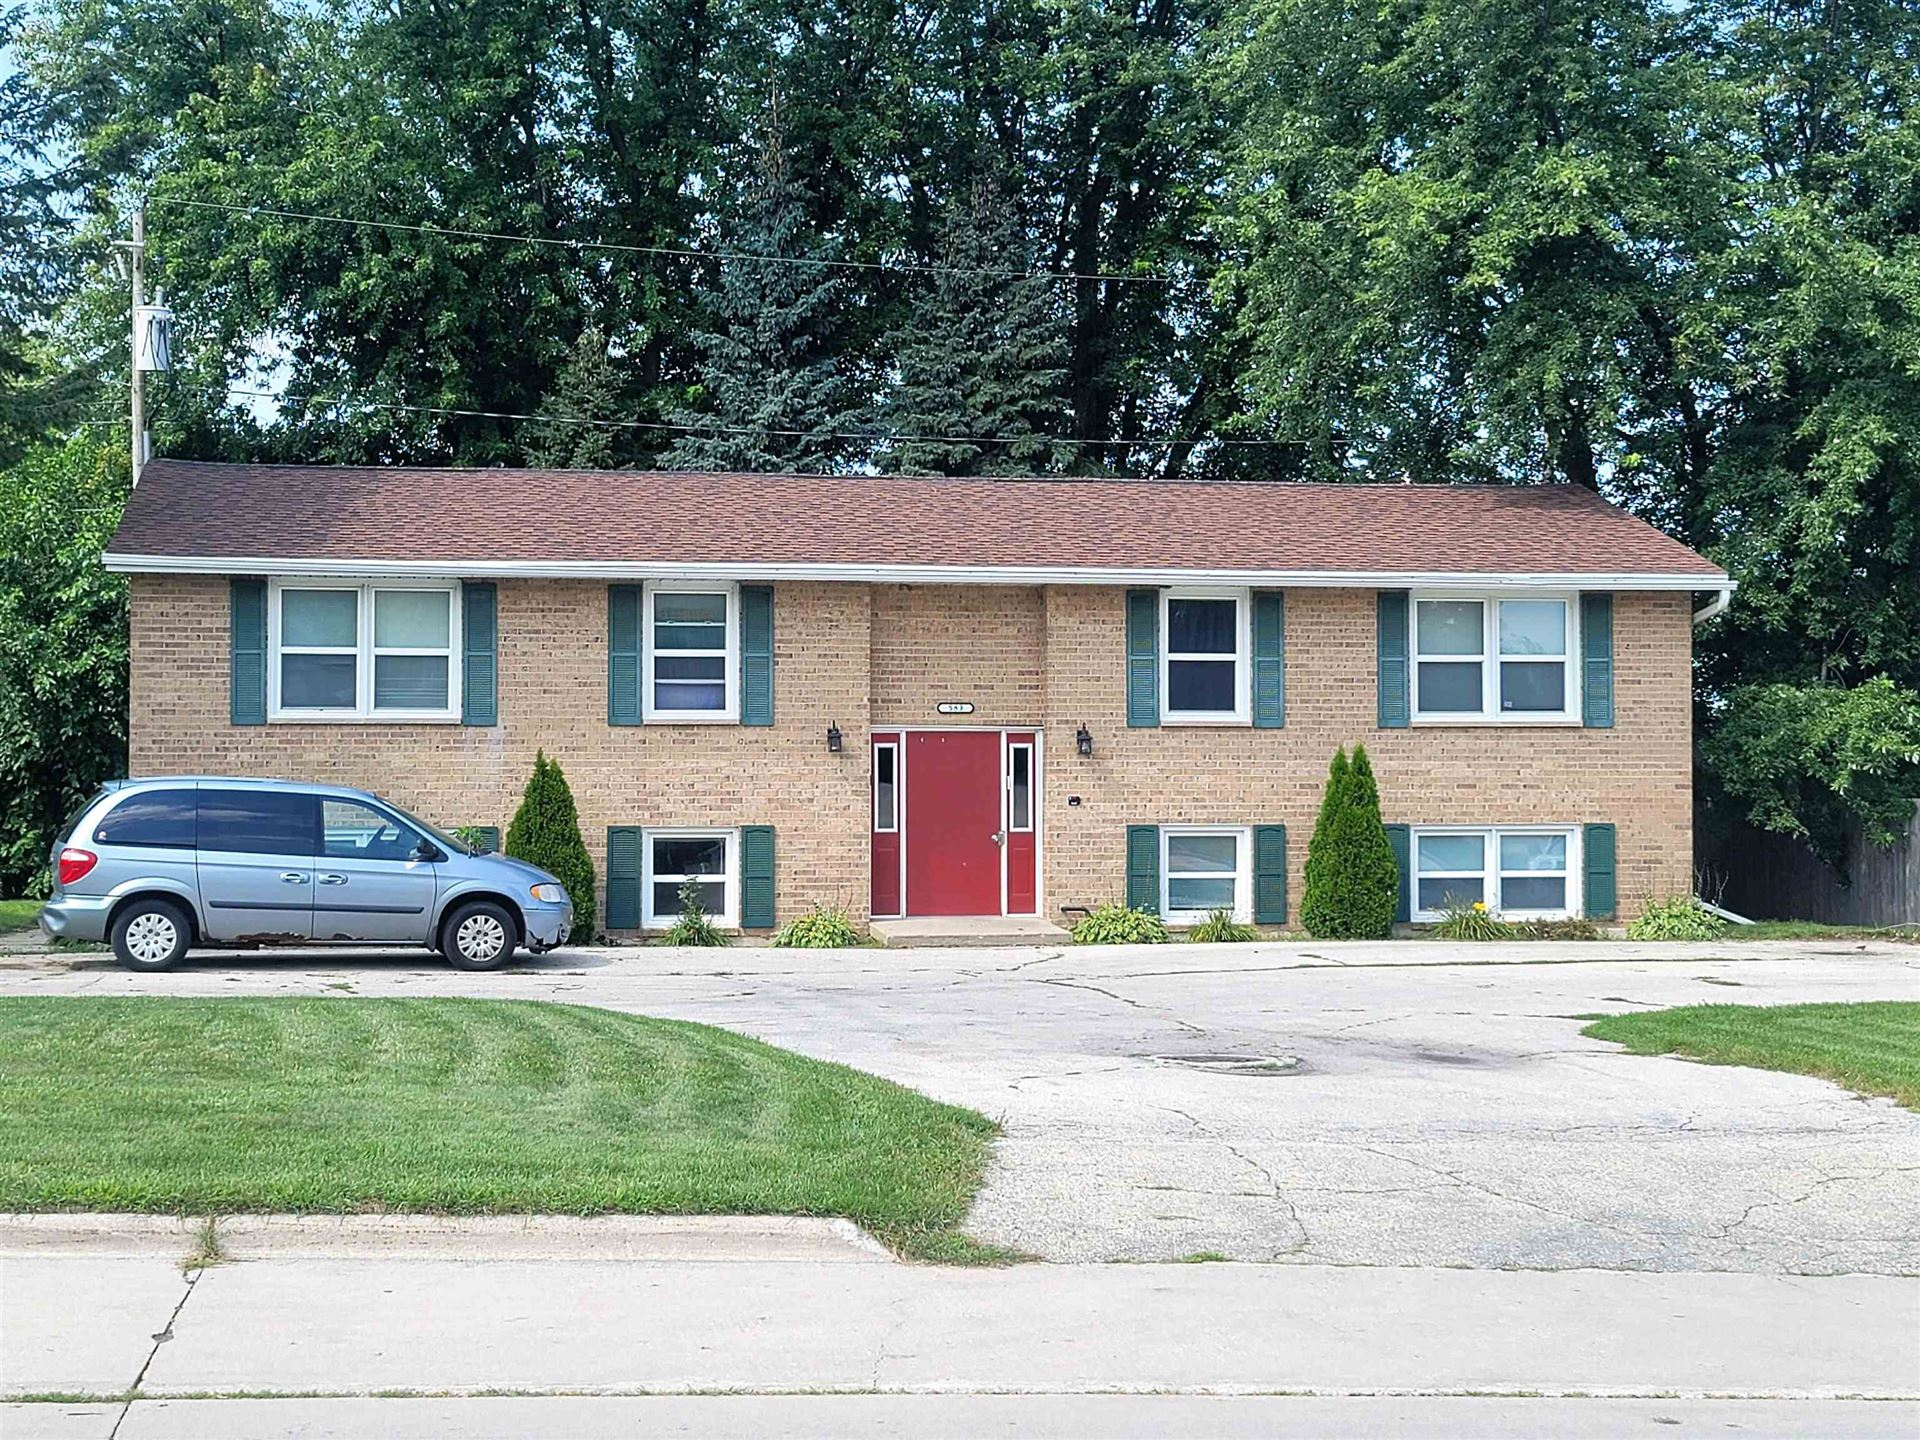 583 CLEMENT Street, Green Bay, WI 54302 - MLS#: 50247862